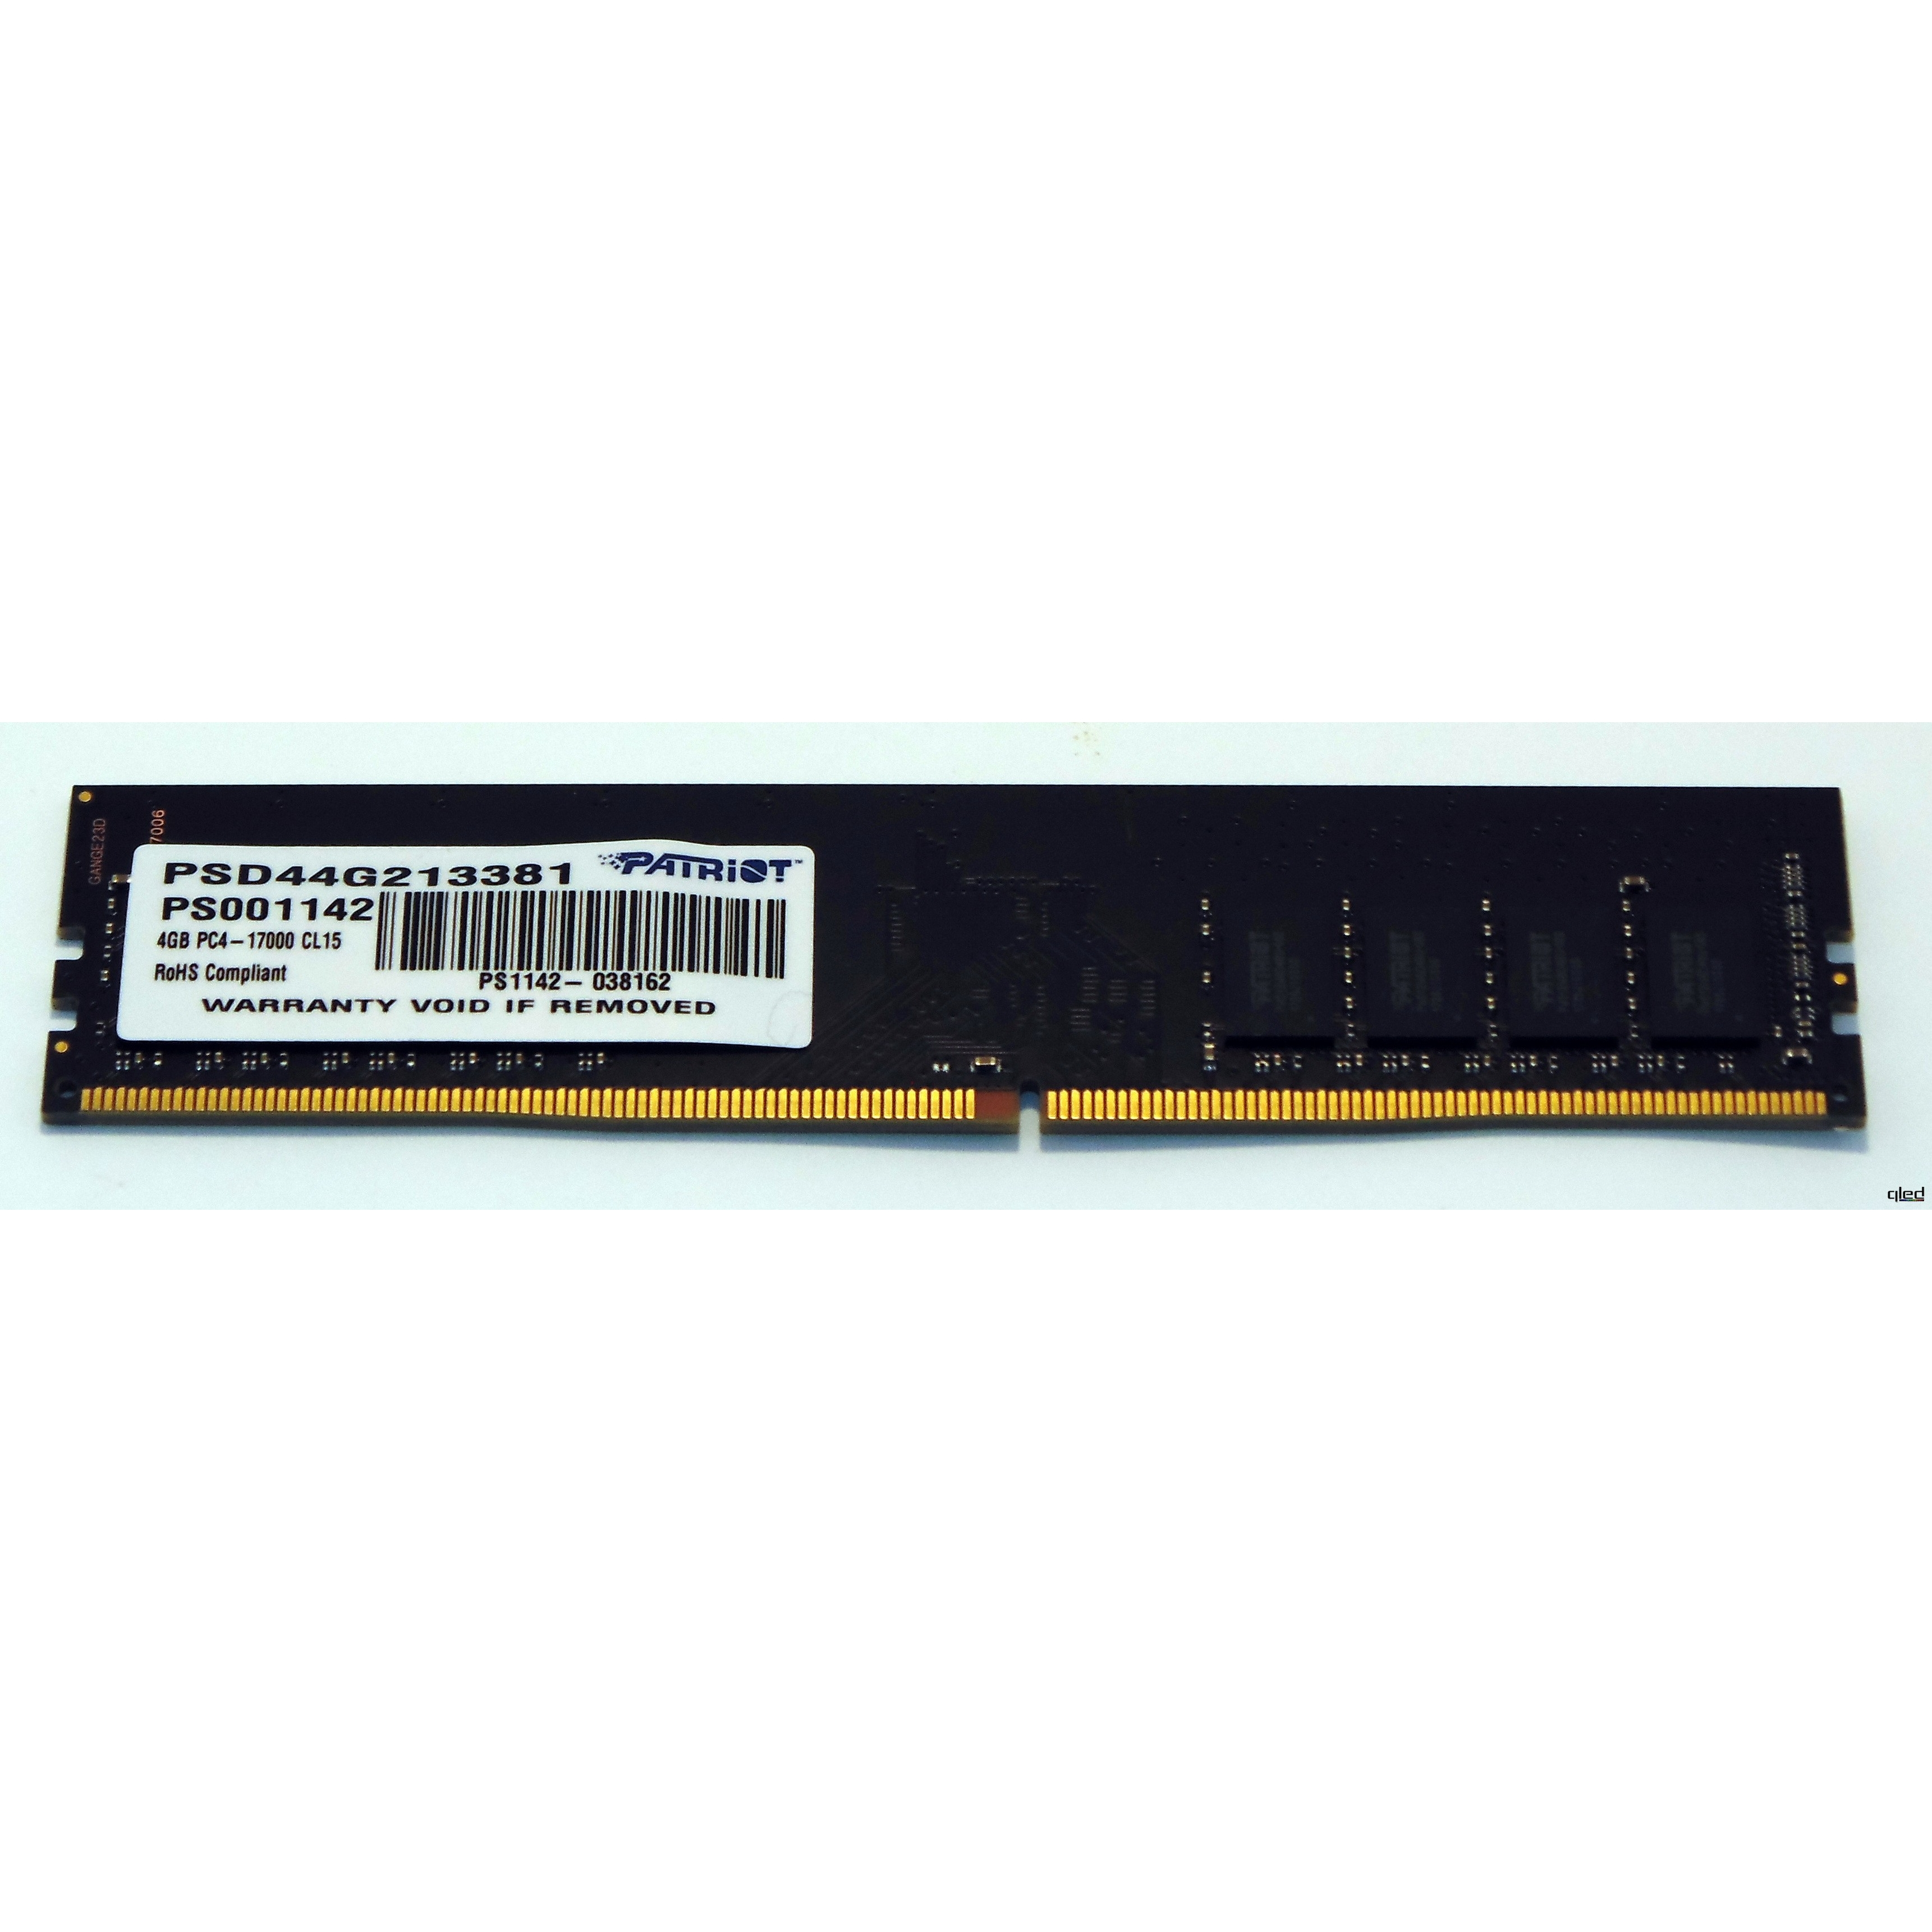 PATRIOT 4GB 2133MHz DDR4 BULK PATPC2133-4 PC RAM